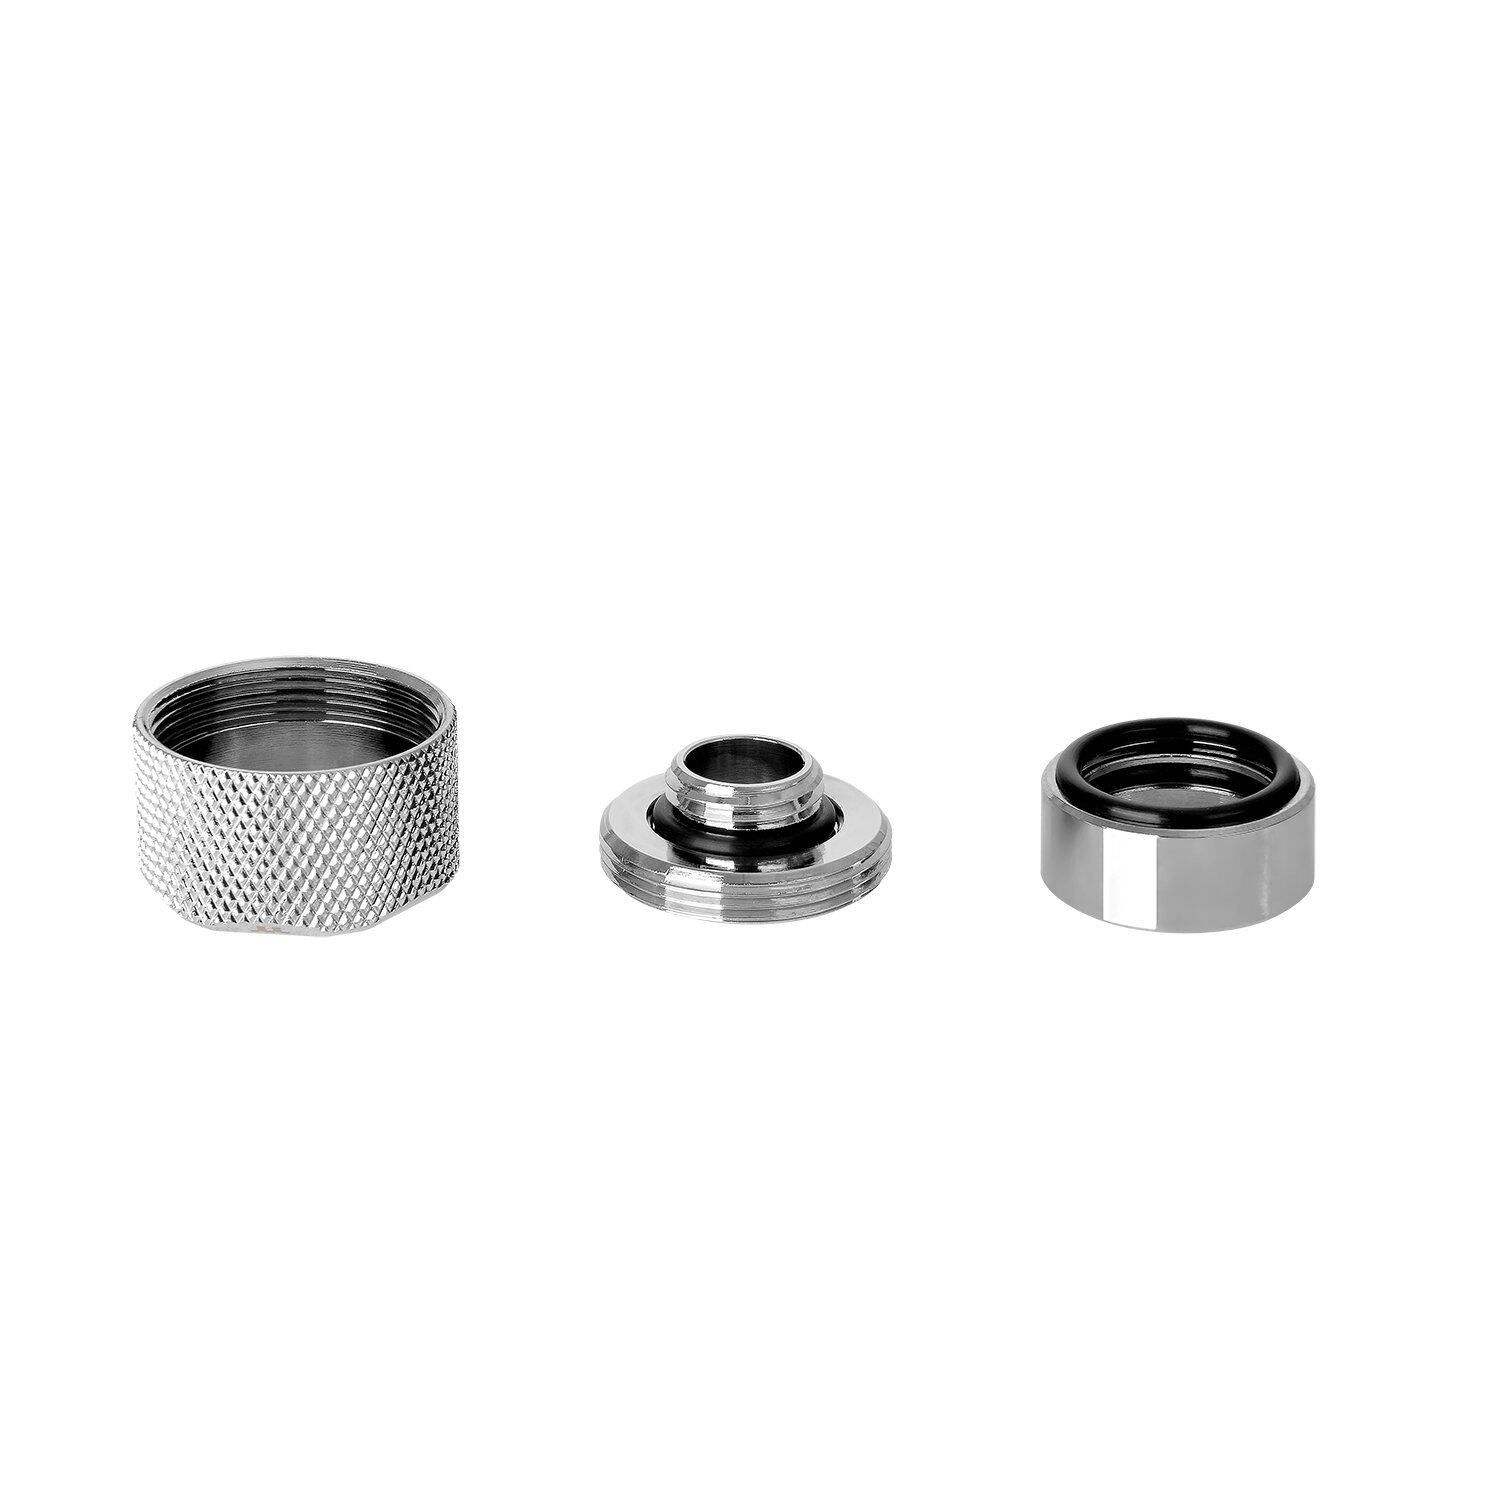 Thermaltake Pacific M-Pro G1/4 PETG 16mm Fitting - Silver (CL-W171-CU00SL-A)